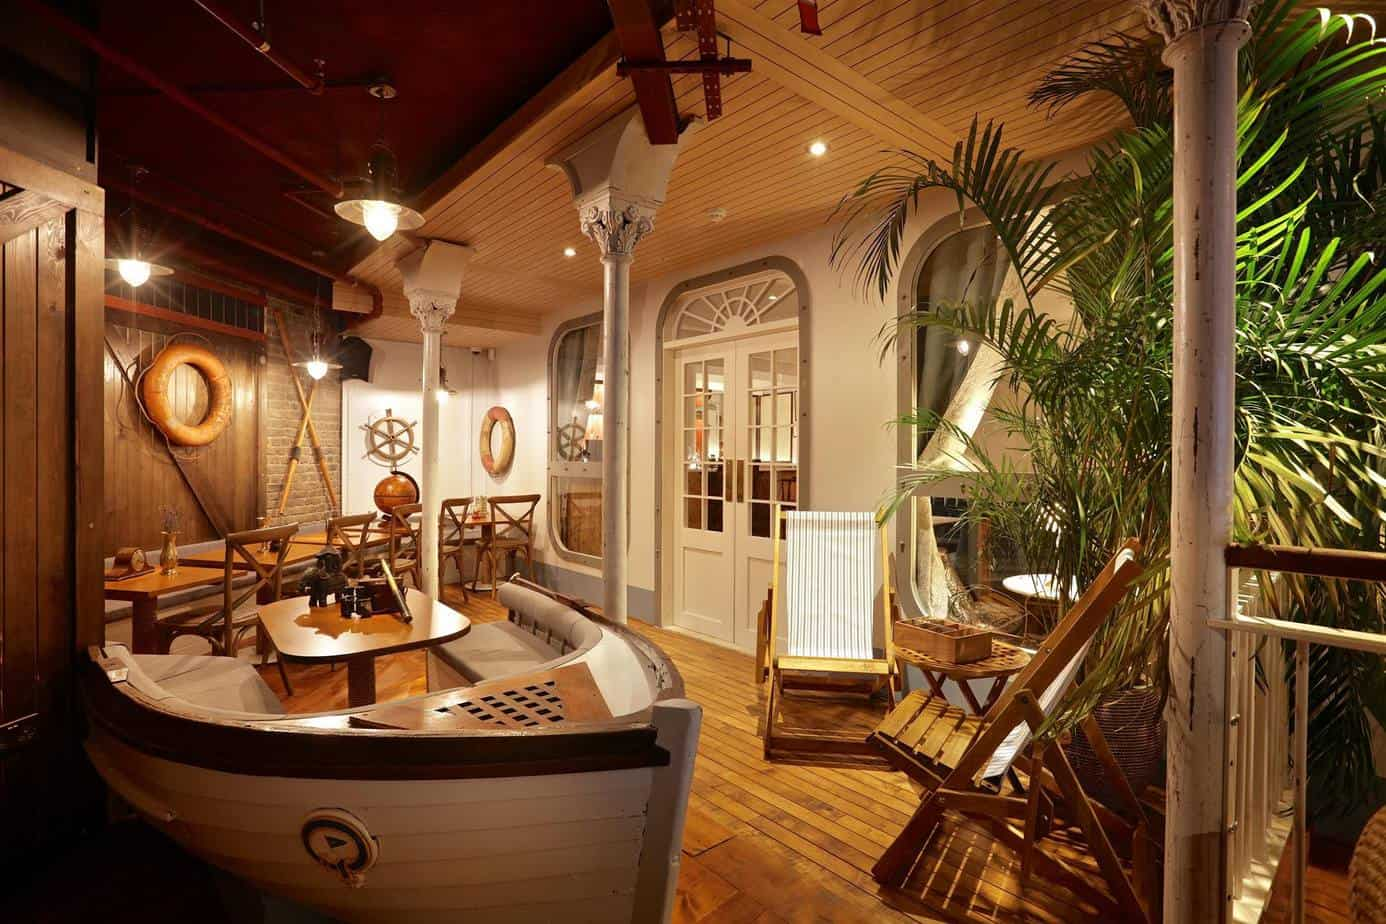 Unique venue with multiple nautical themed event rooms